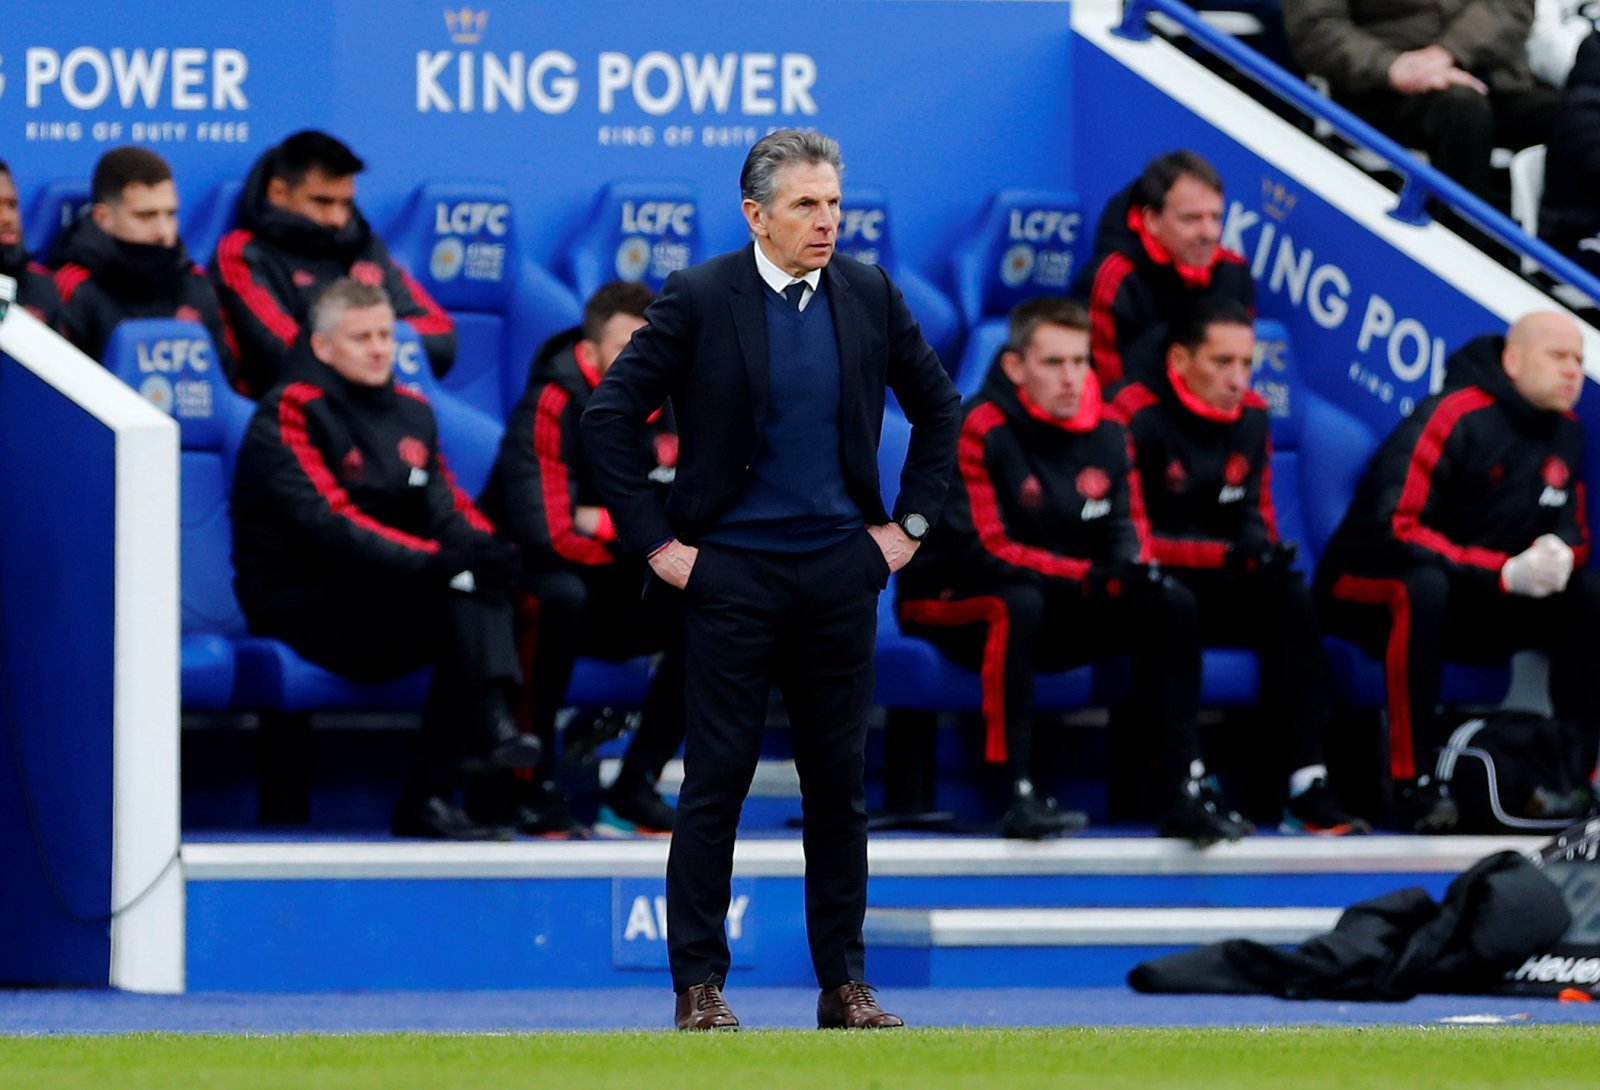 Introducing: The Leicester City player who is set to benefit most from Claude Puel's sacking